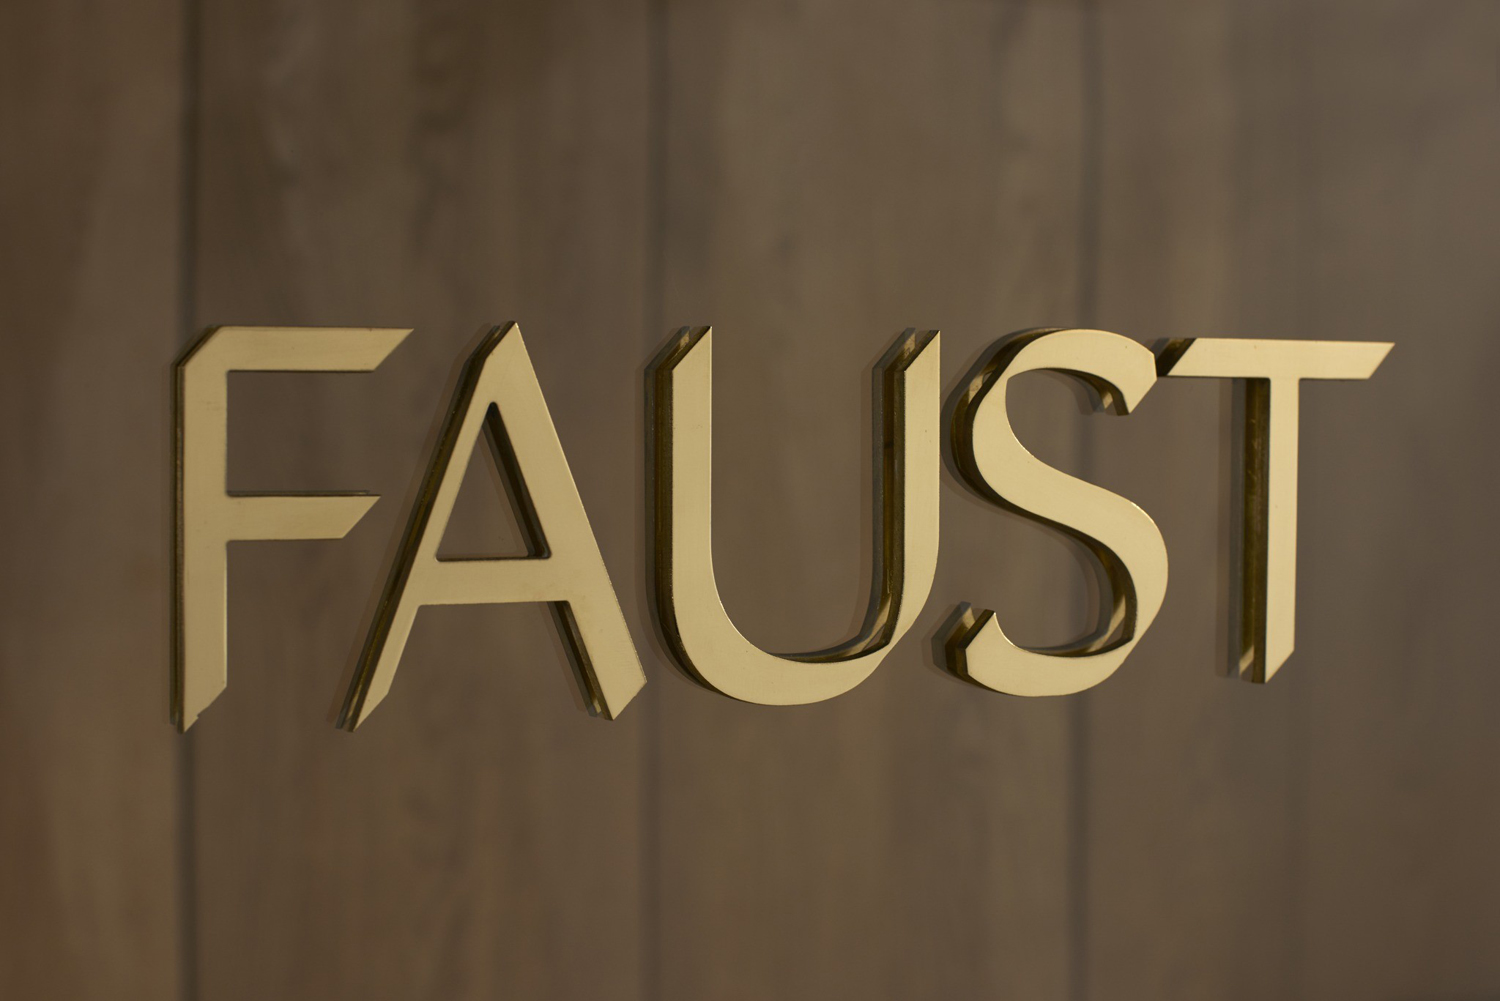 Sign Design – Faust by Snøhetta